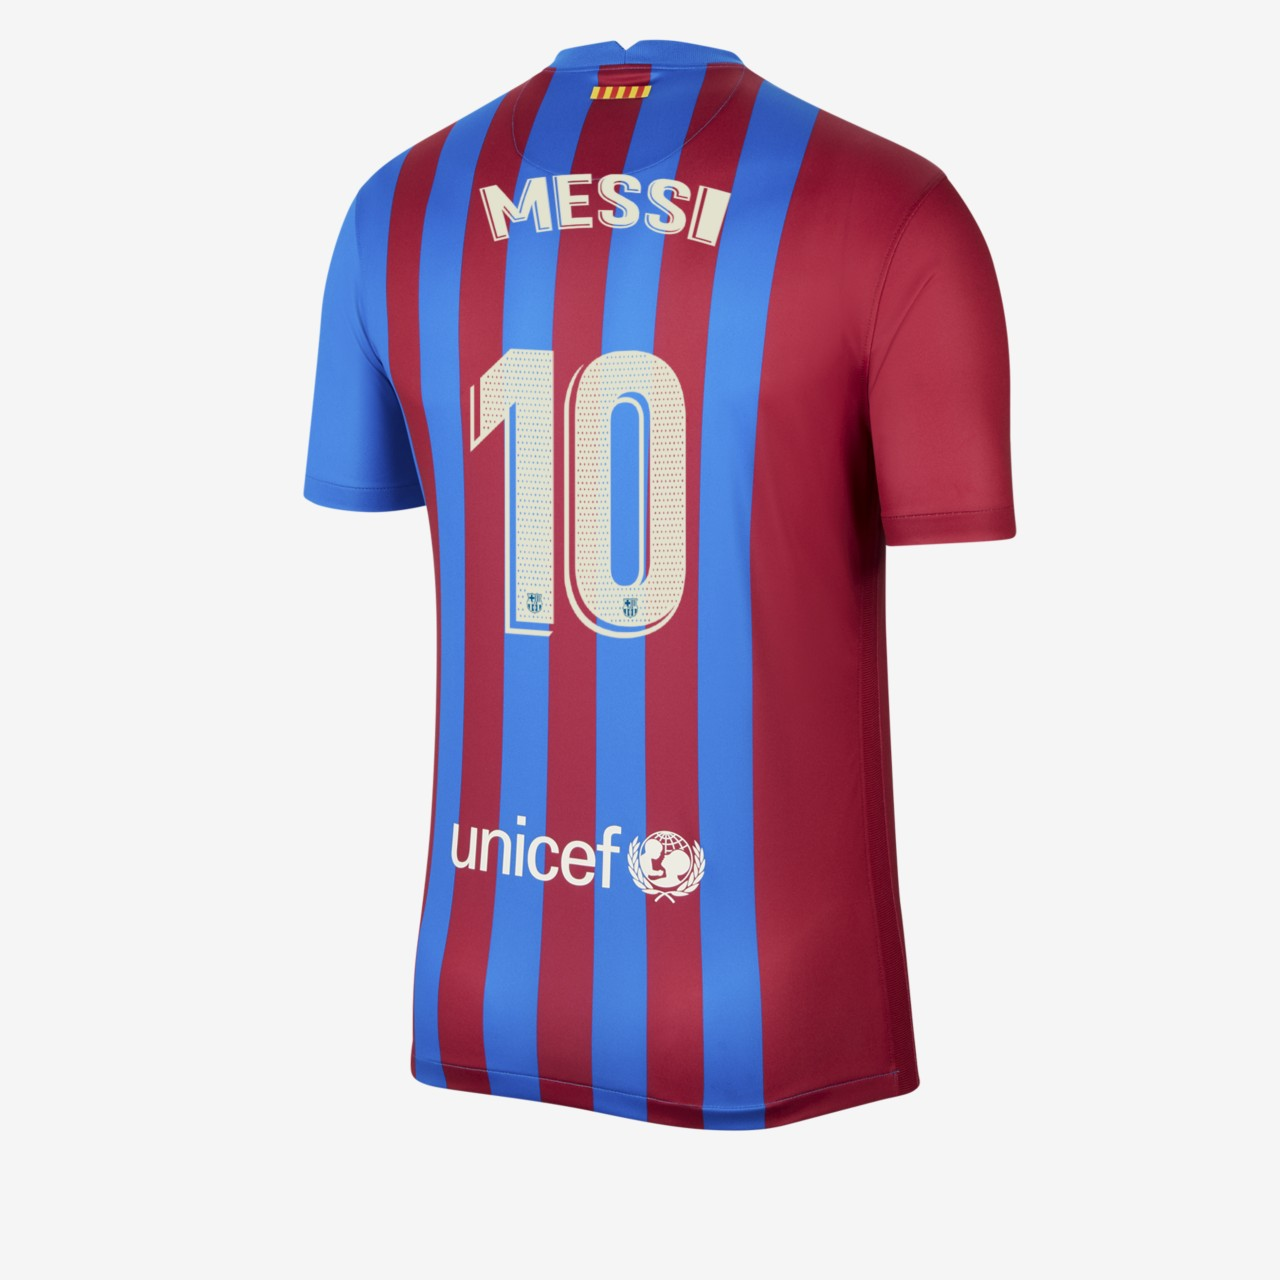 Flocage Messi maillot FC Barcelone 2021-2022